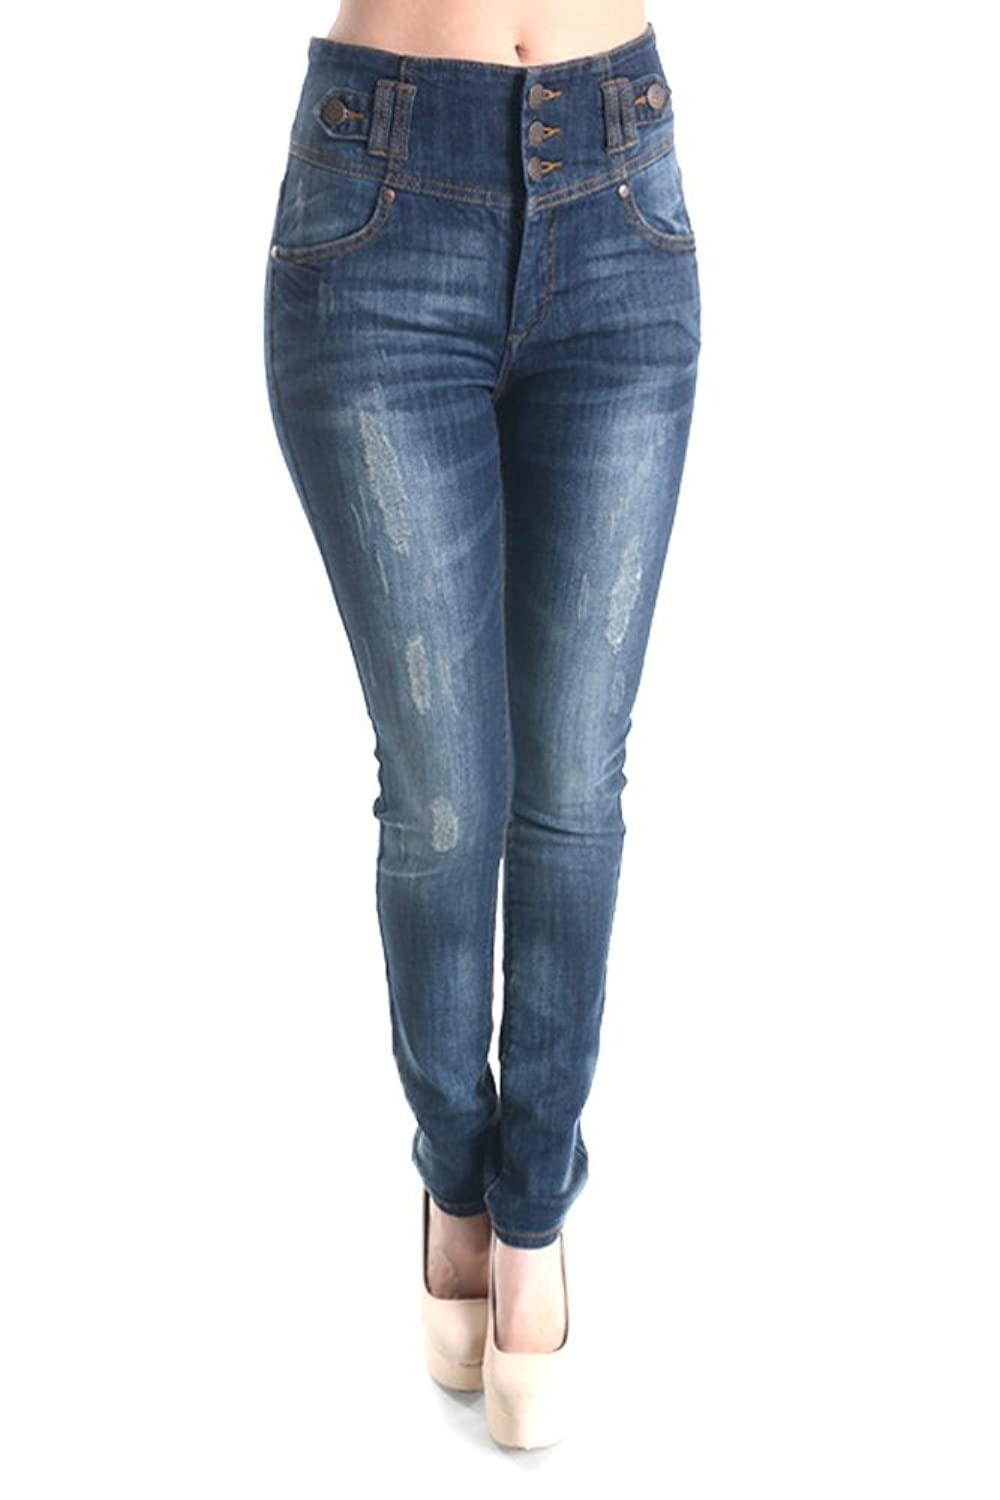 Women's Stretch Destroy High Waist Triple Button Skinny Jean With 5 Pockets